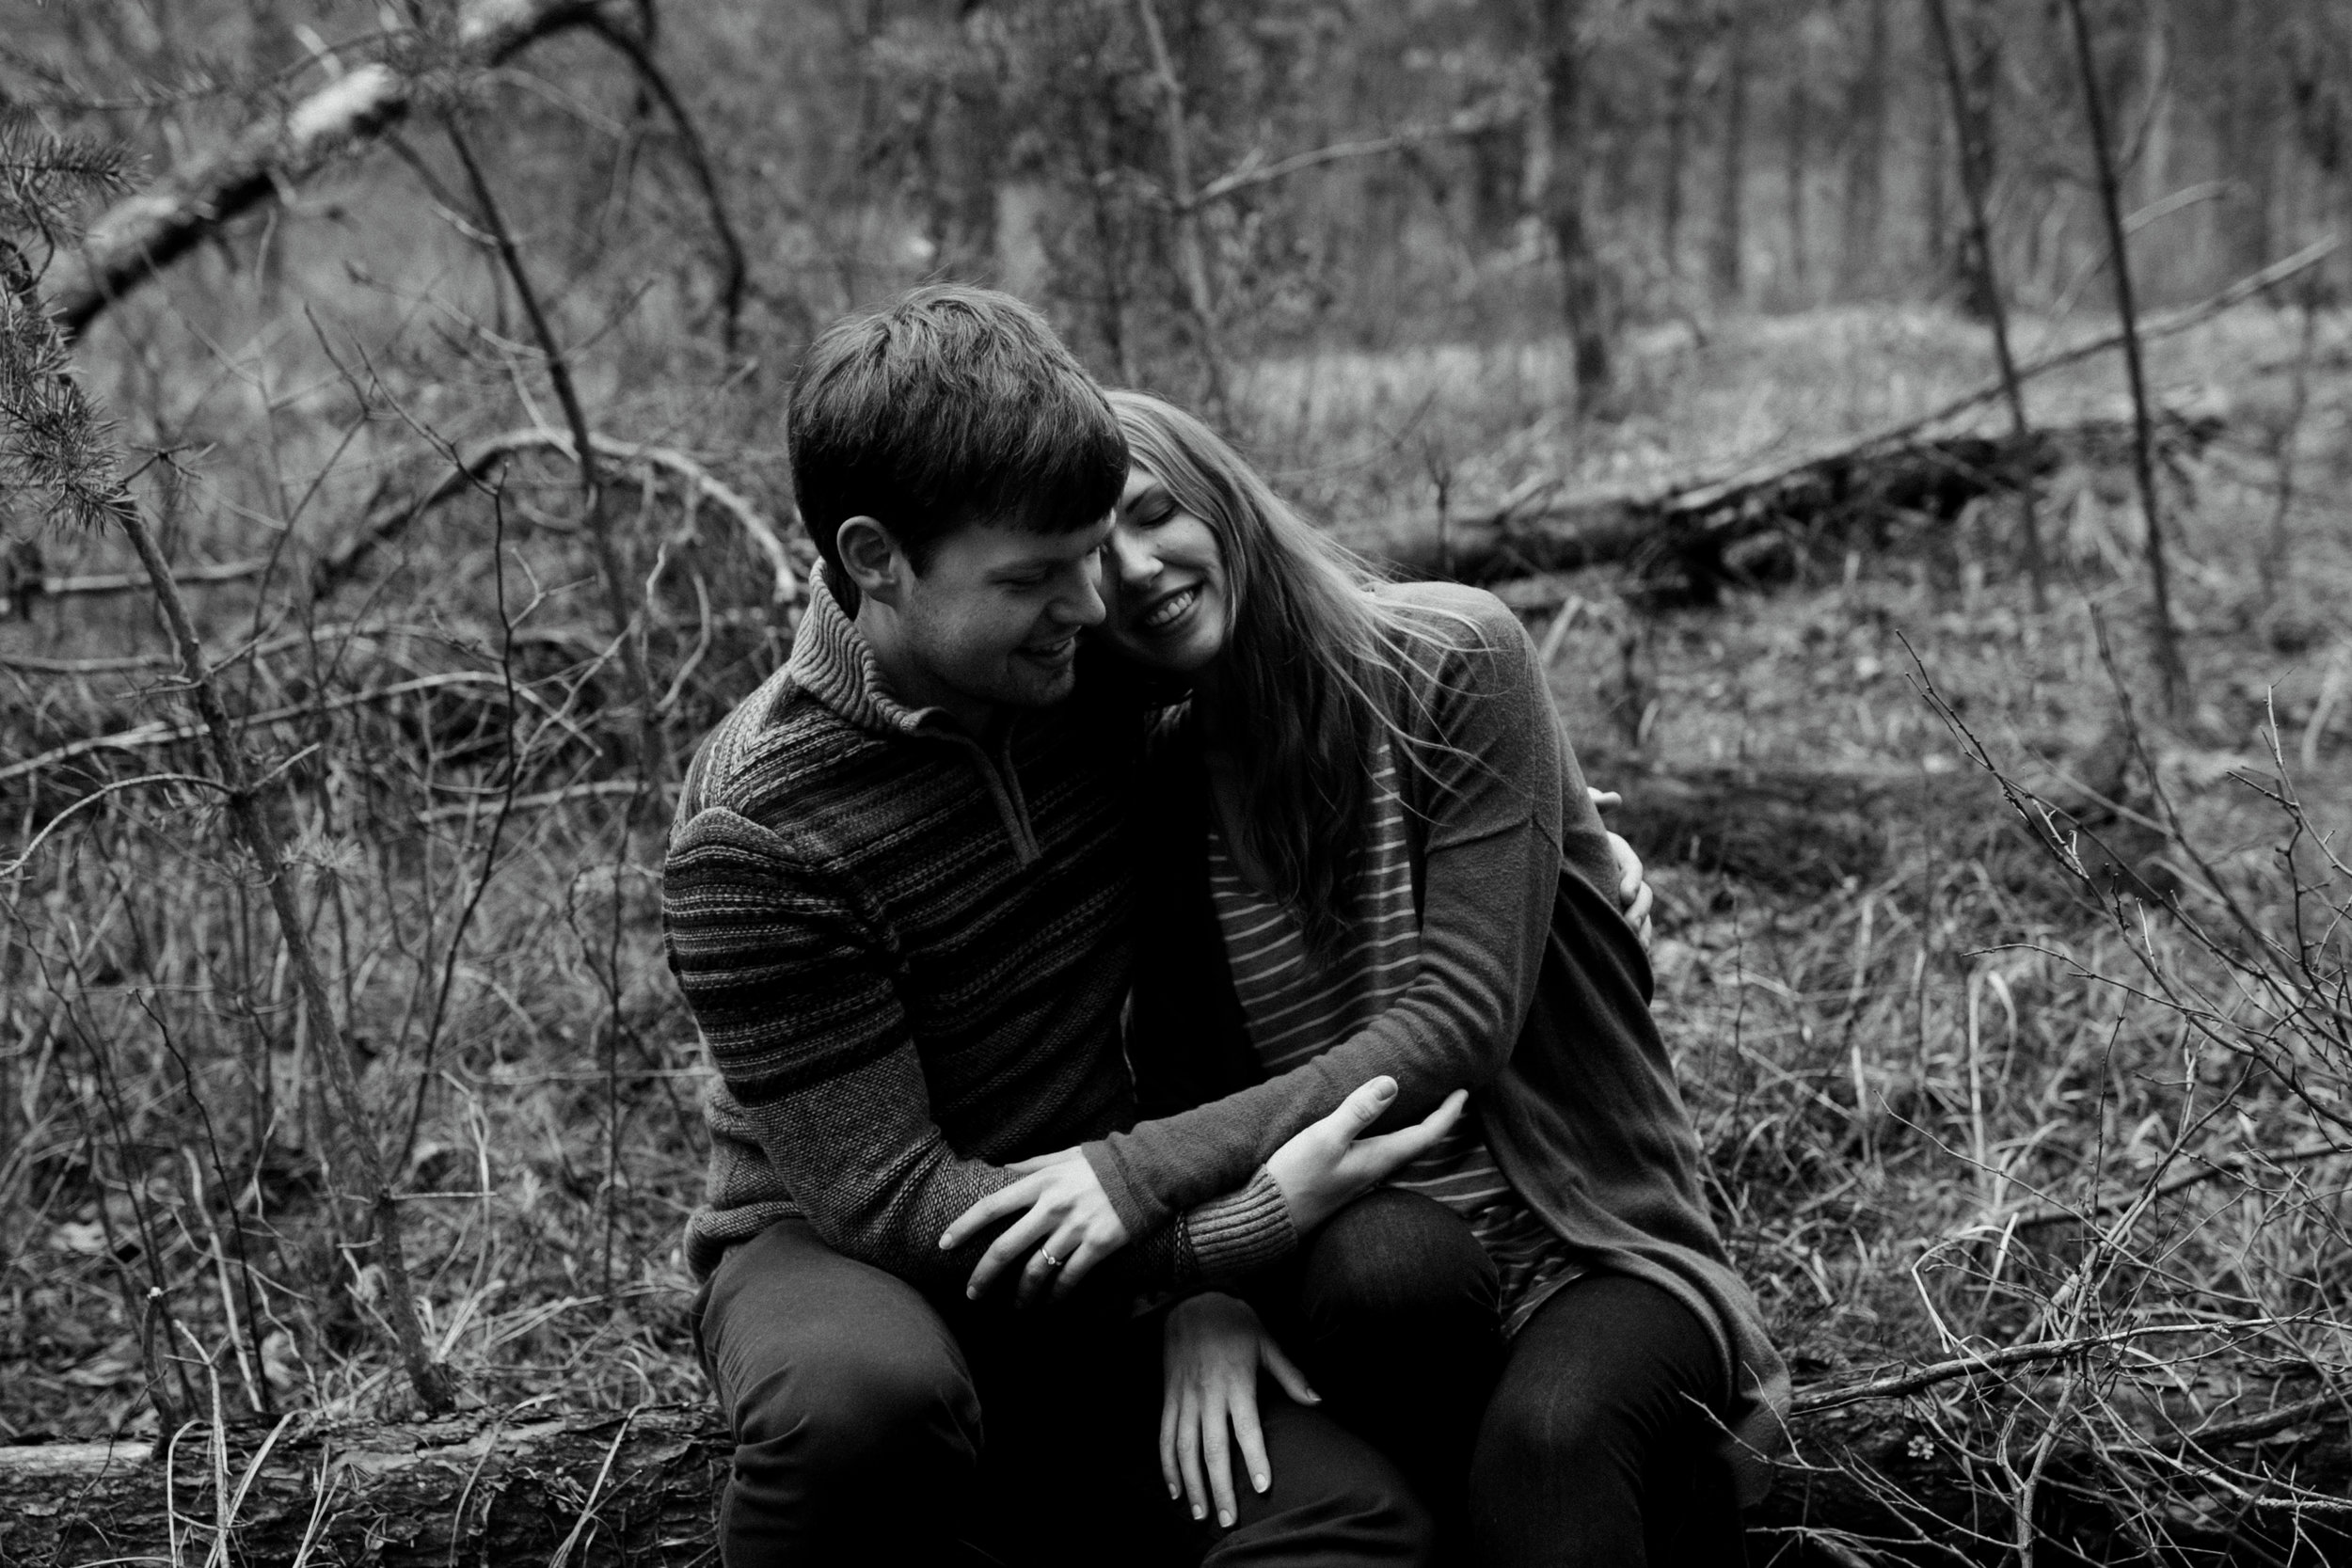 Emotionally raw engagement photography in the woods at the Northland Arboretum in Brainerd Minnesota, photographed by Britt DeZeeuw.